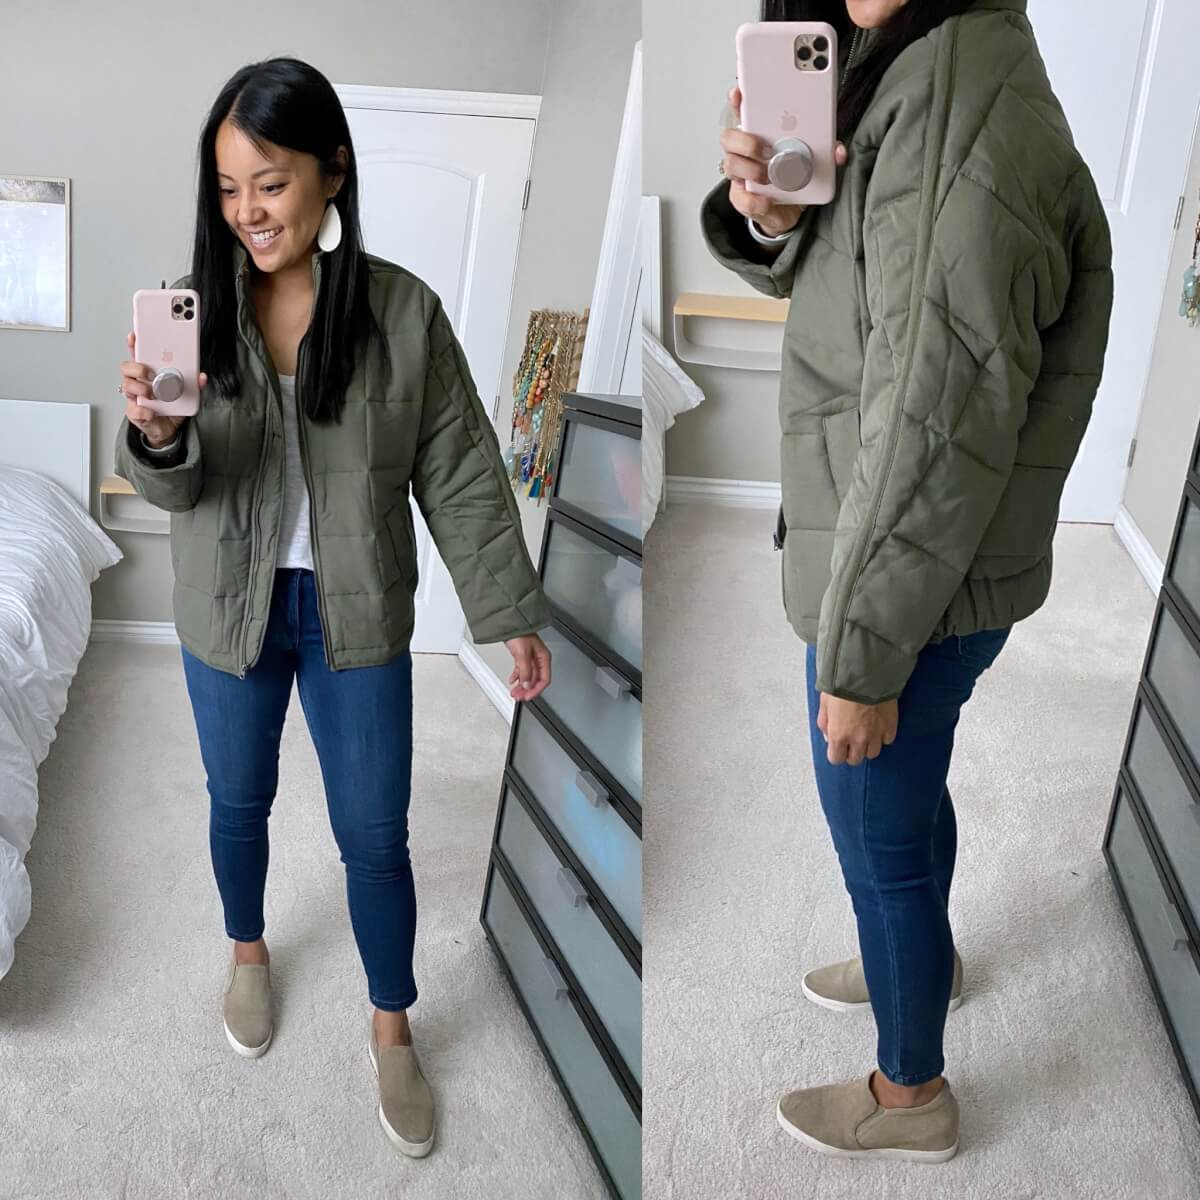 Casual Outfit NSale: white tee + blue skinny jeans + olive jacket + nude slip-on sneakers